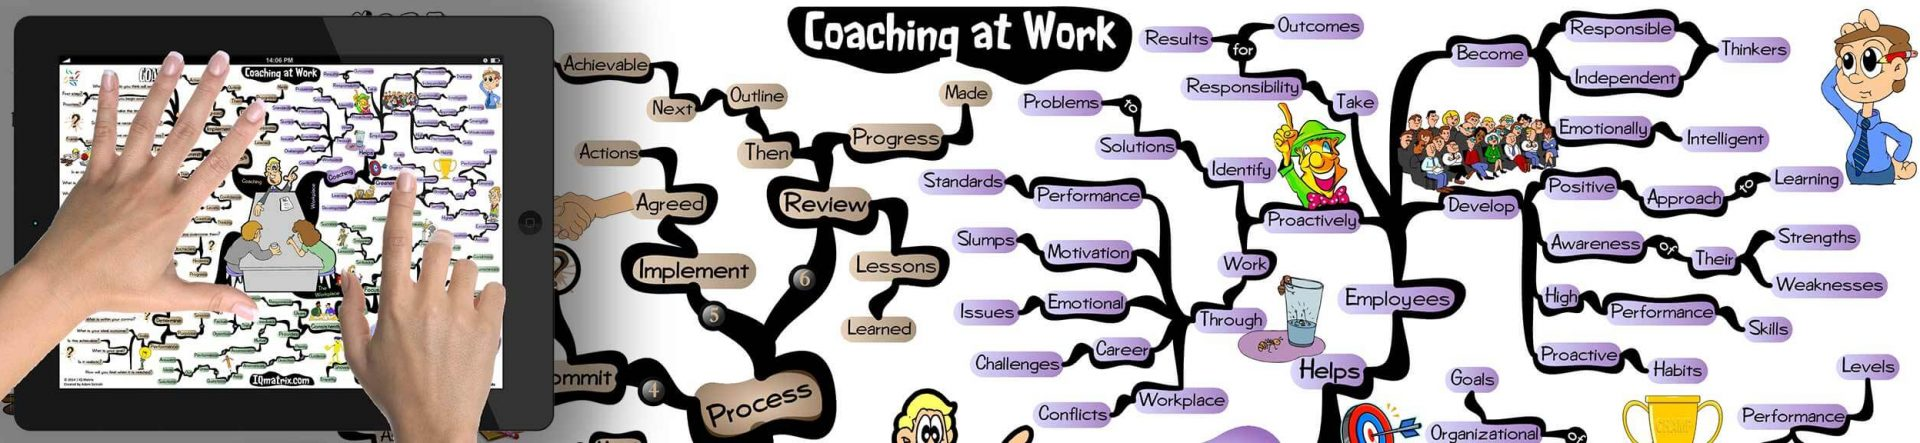 Workplace Coaching mind map